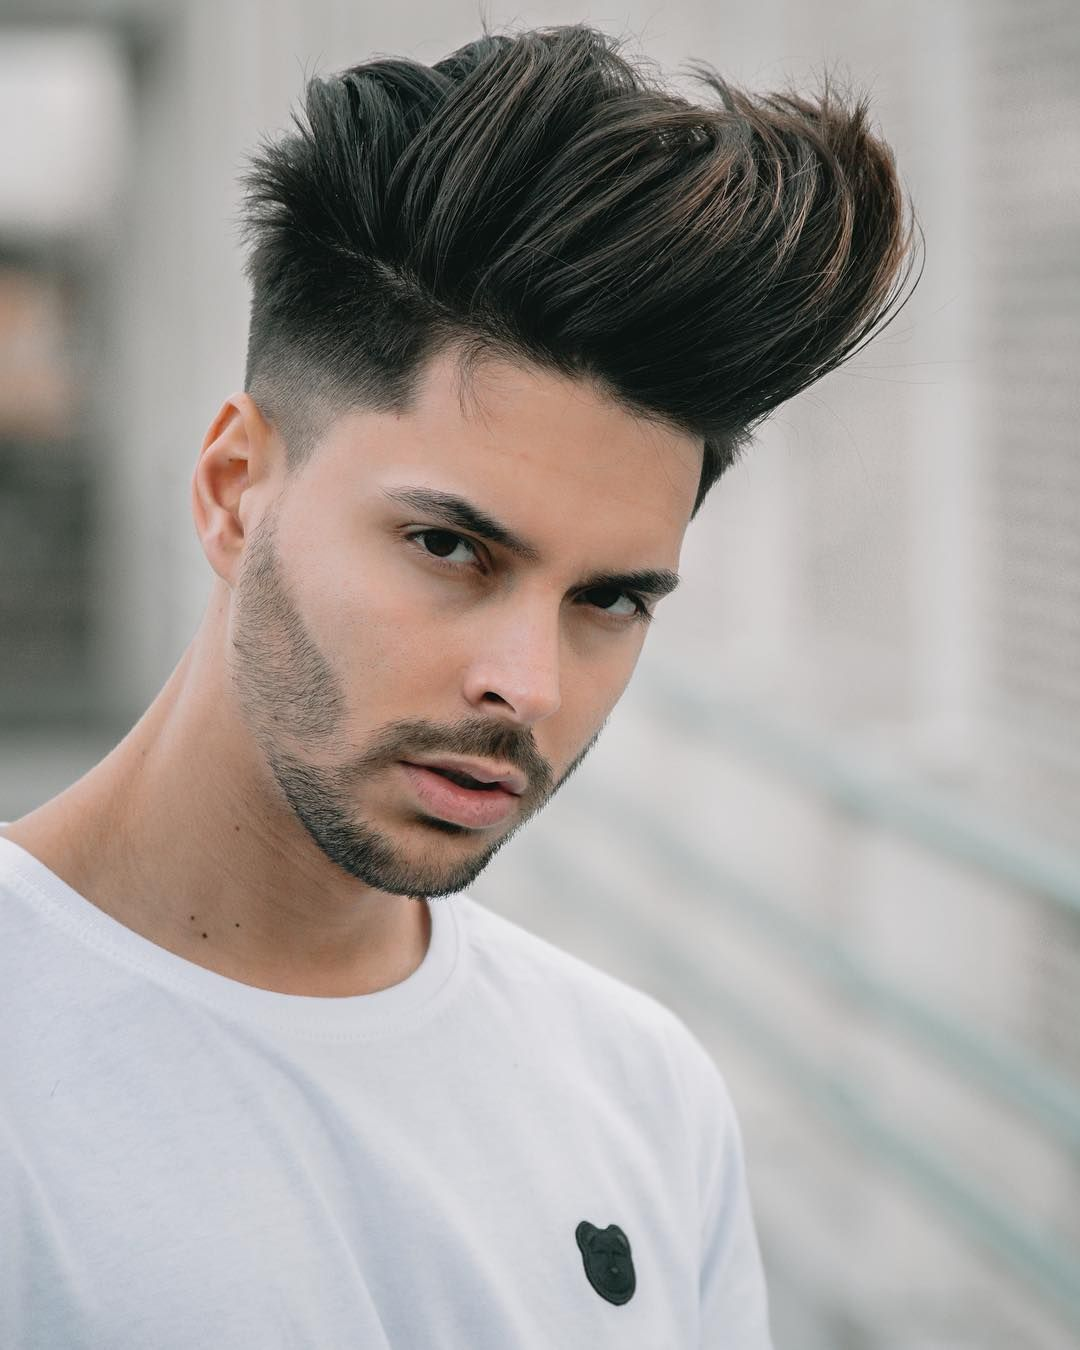 Men's Haircut Trends 2019 ! Latest Hairstyles for Men's